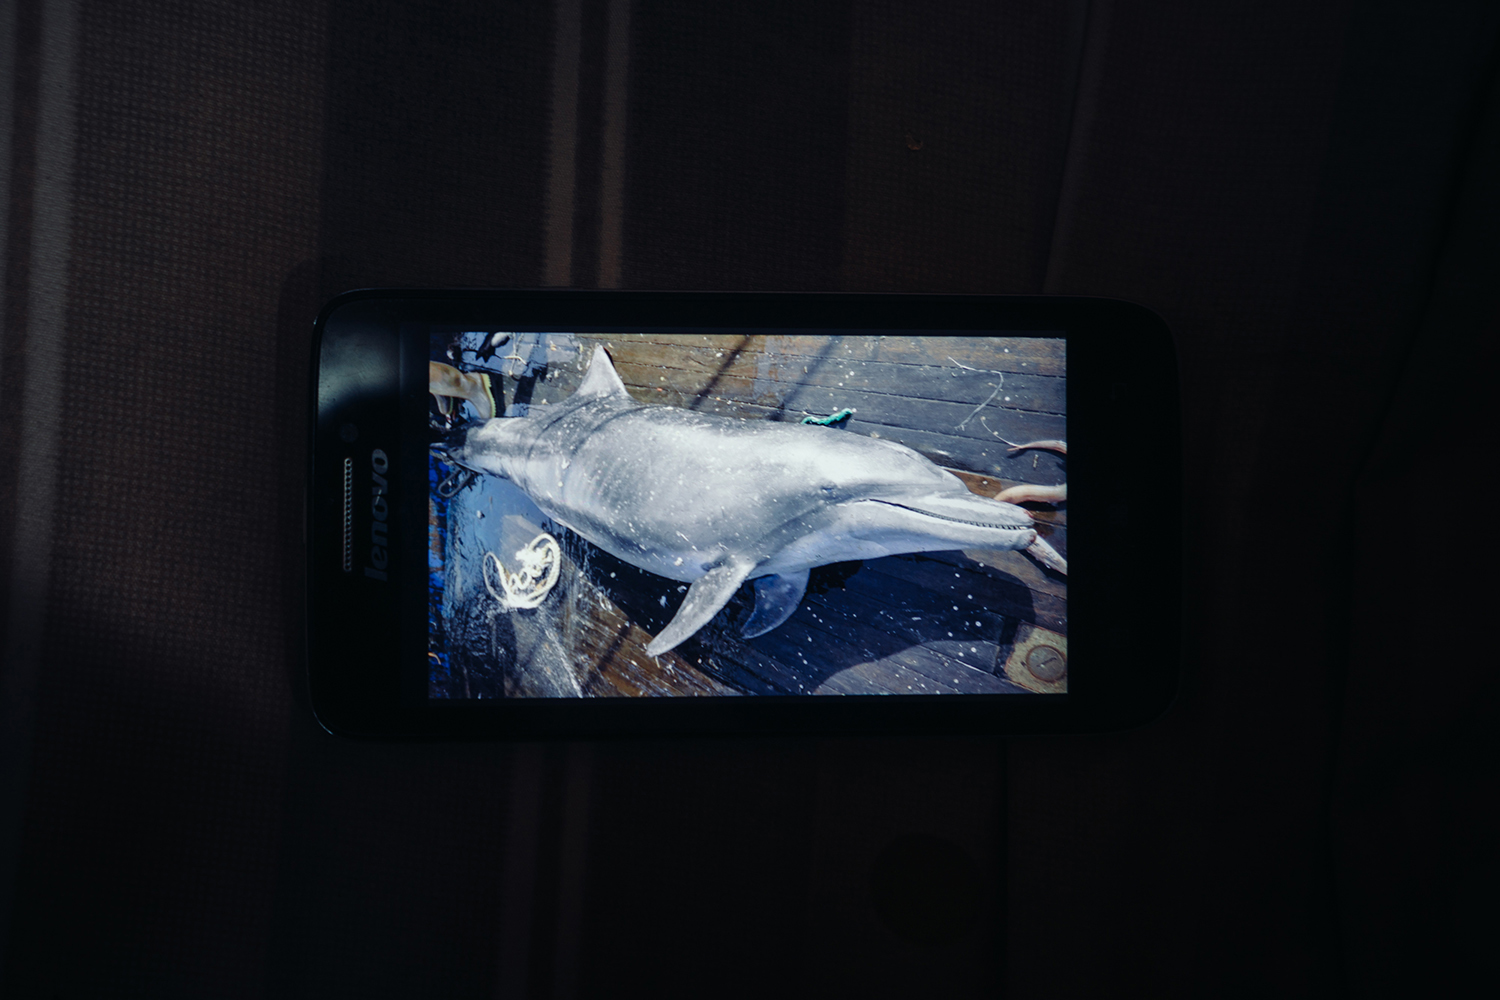 A worker on Wang's ship displays a picture of a spinner dolphin (Stenella Longirostris, already dead in the photo) on his cellphone, July 25, 2016. The dolphins get caught in the trawl nets used by industrial fishing boats, which catch indiscriminately.